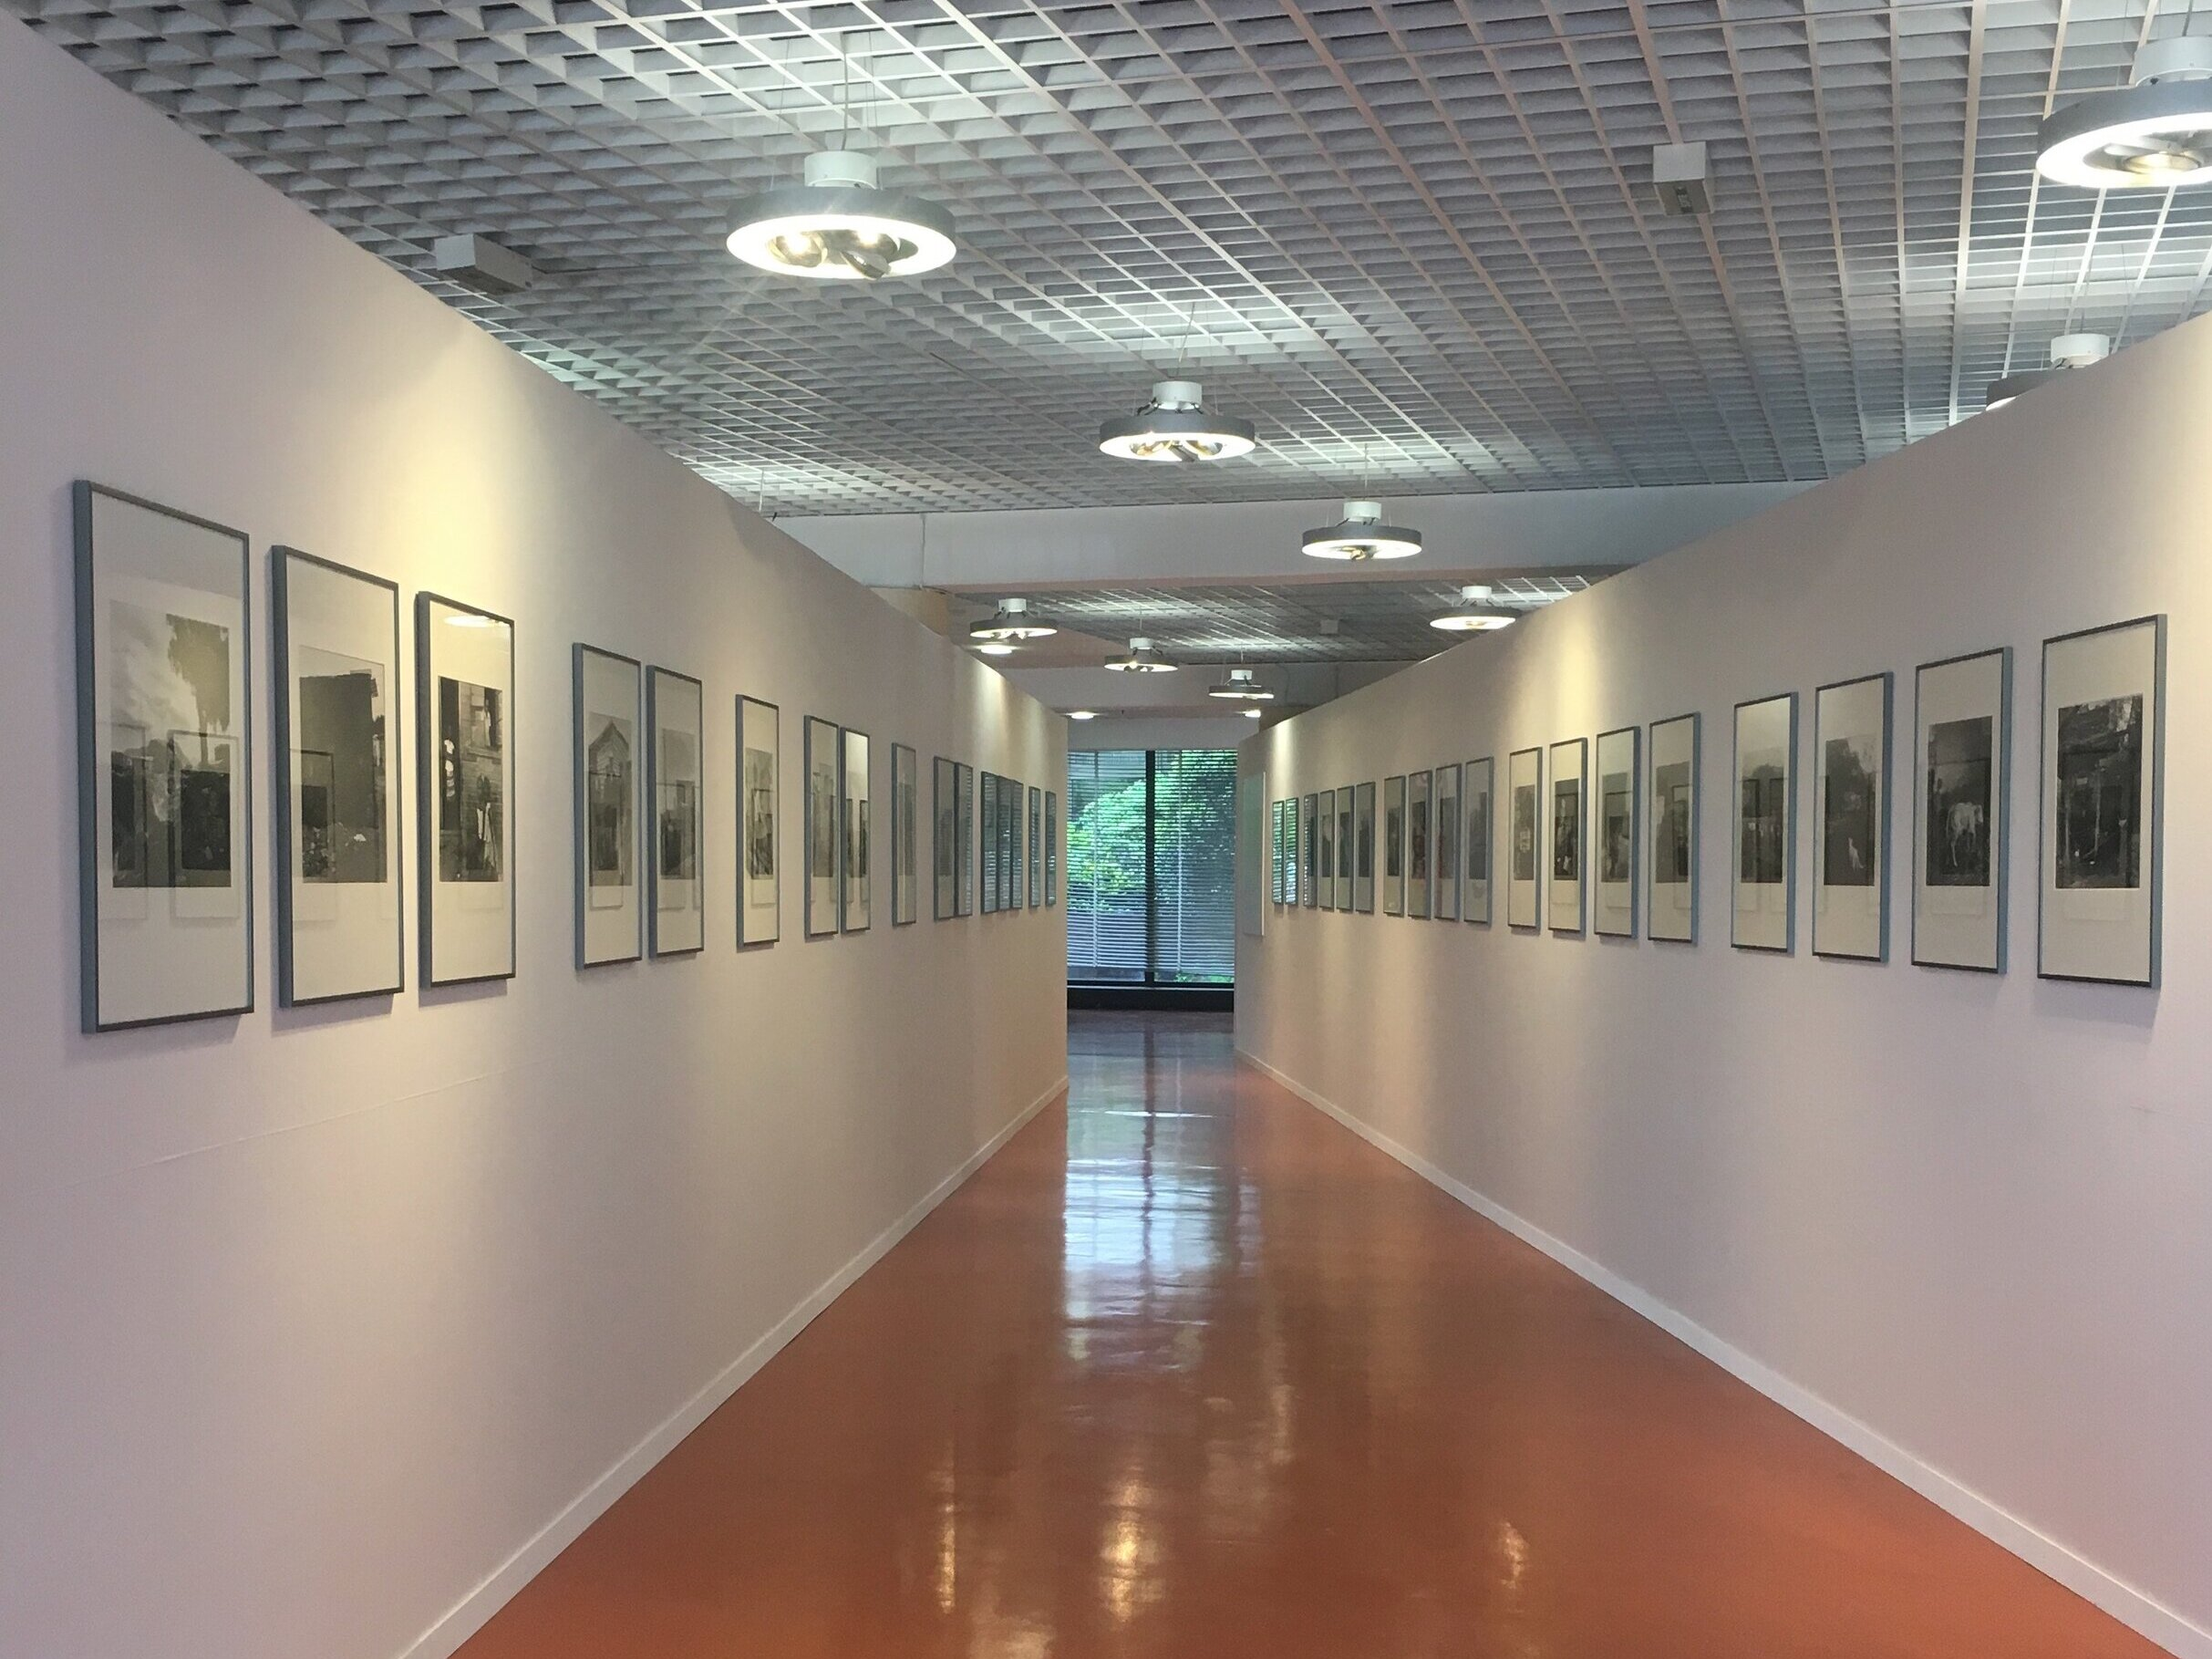 Exhibition of Basque and South Africa work at the Festival du Regard, Cergy Pontoise, 2019. In good company with Atget and Doisneau.